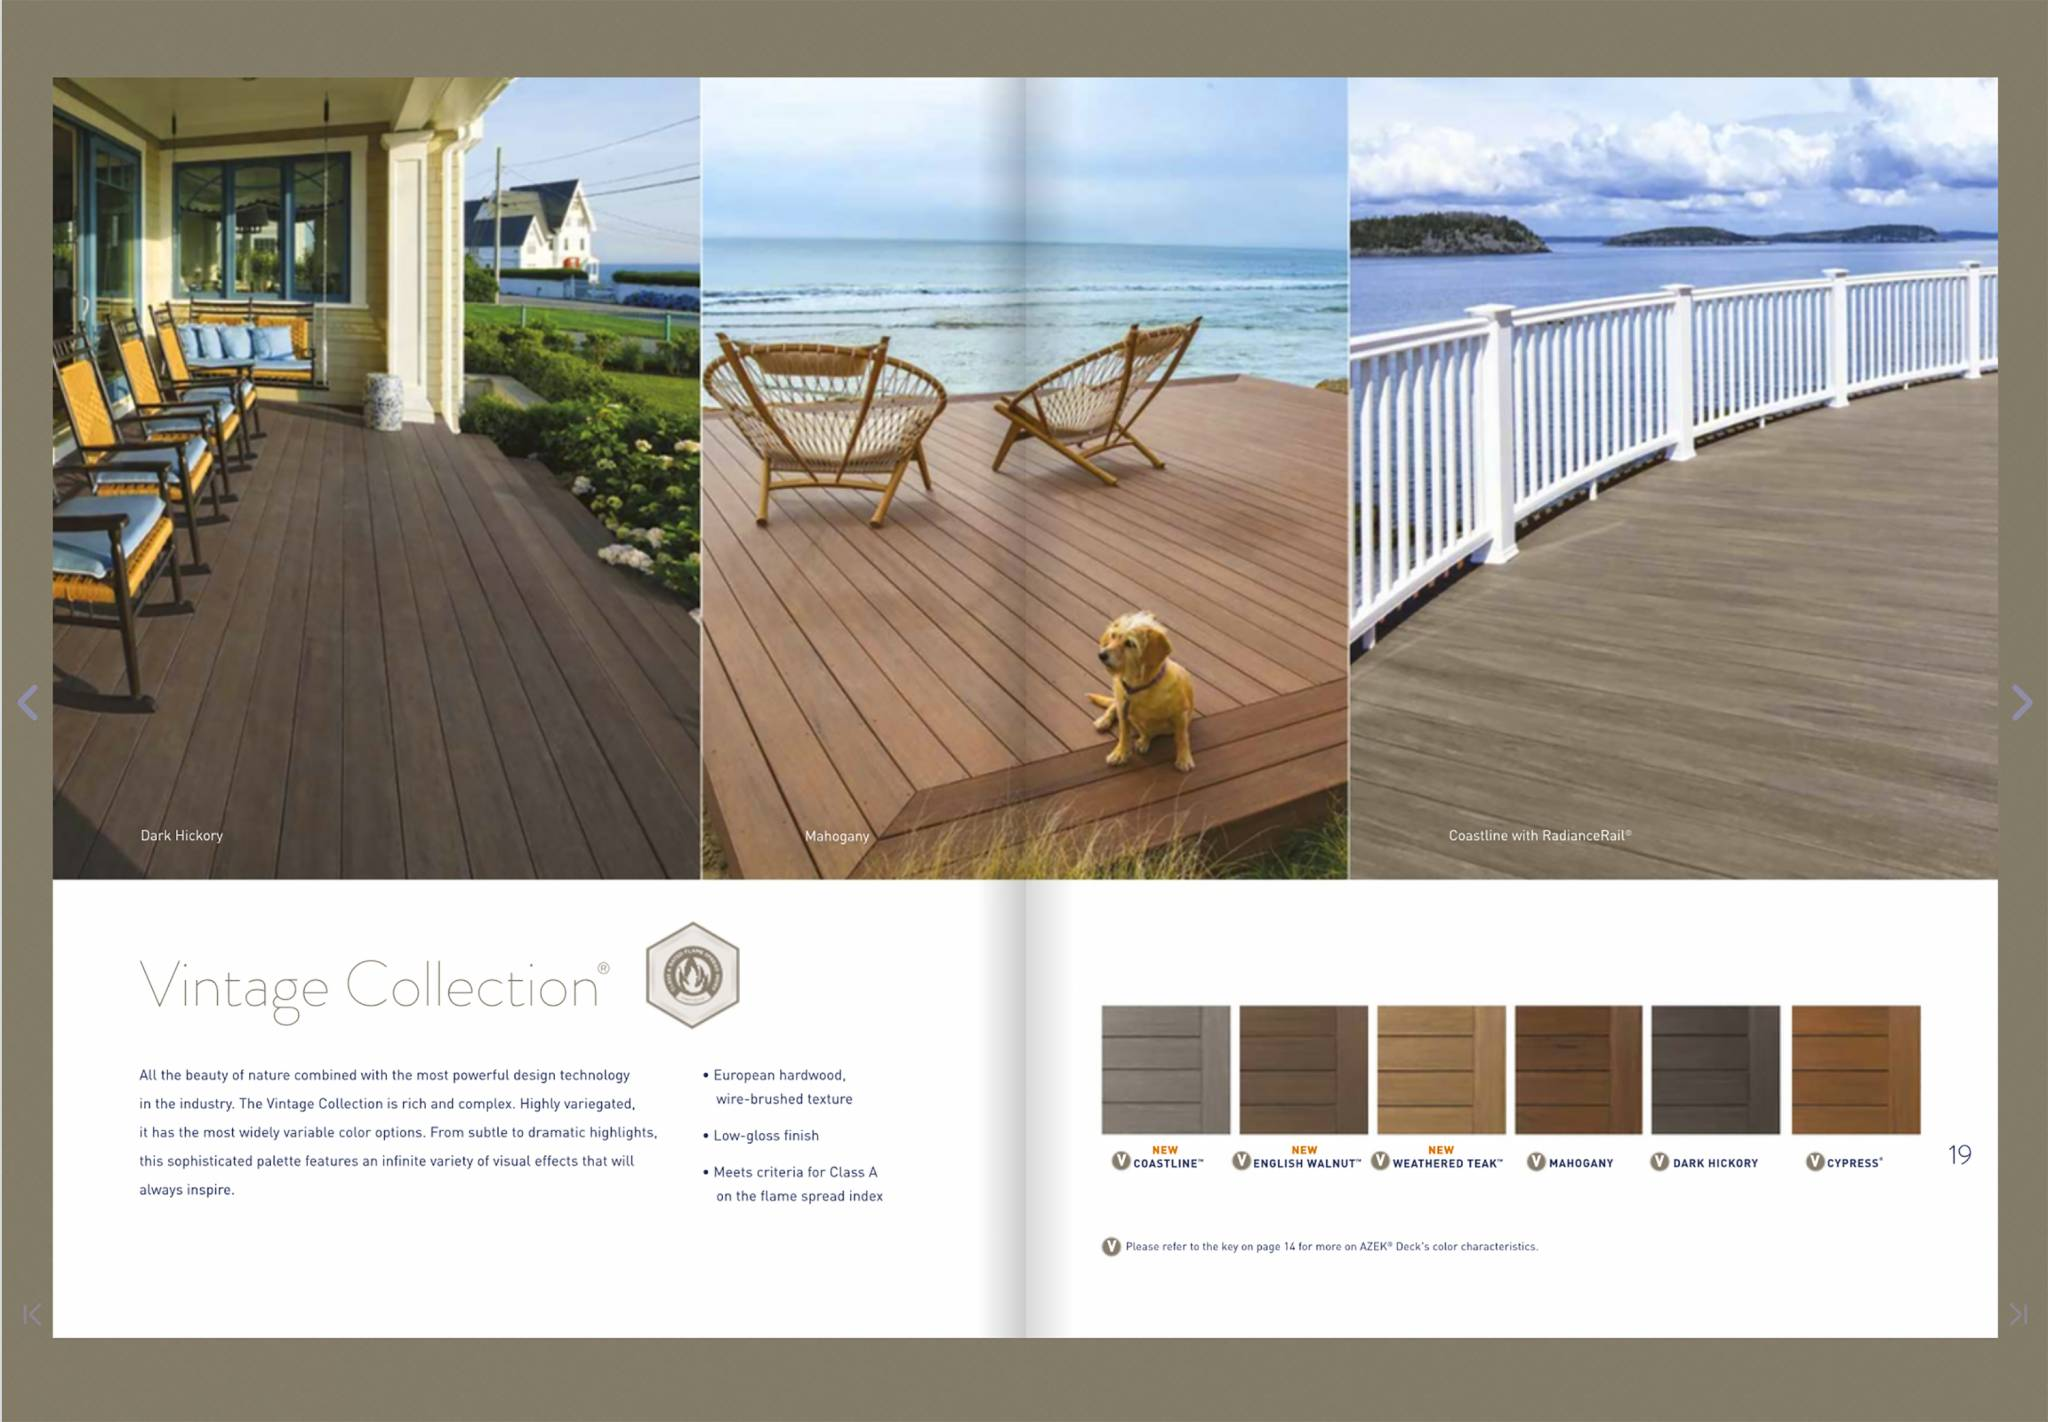 architectural photography location photography kc kratt photography residential decking & trim